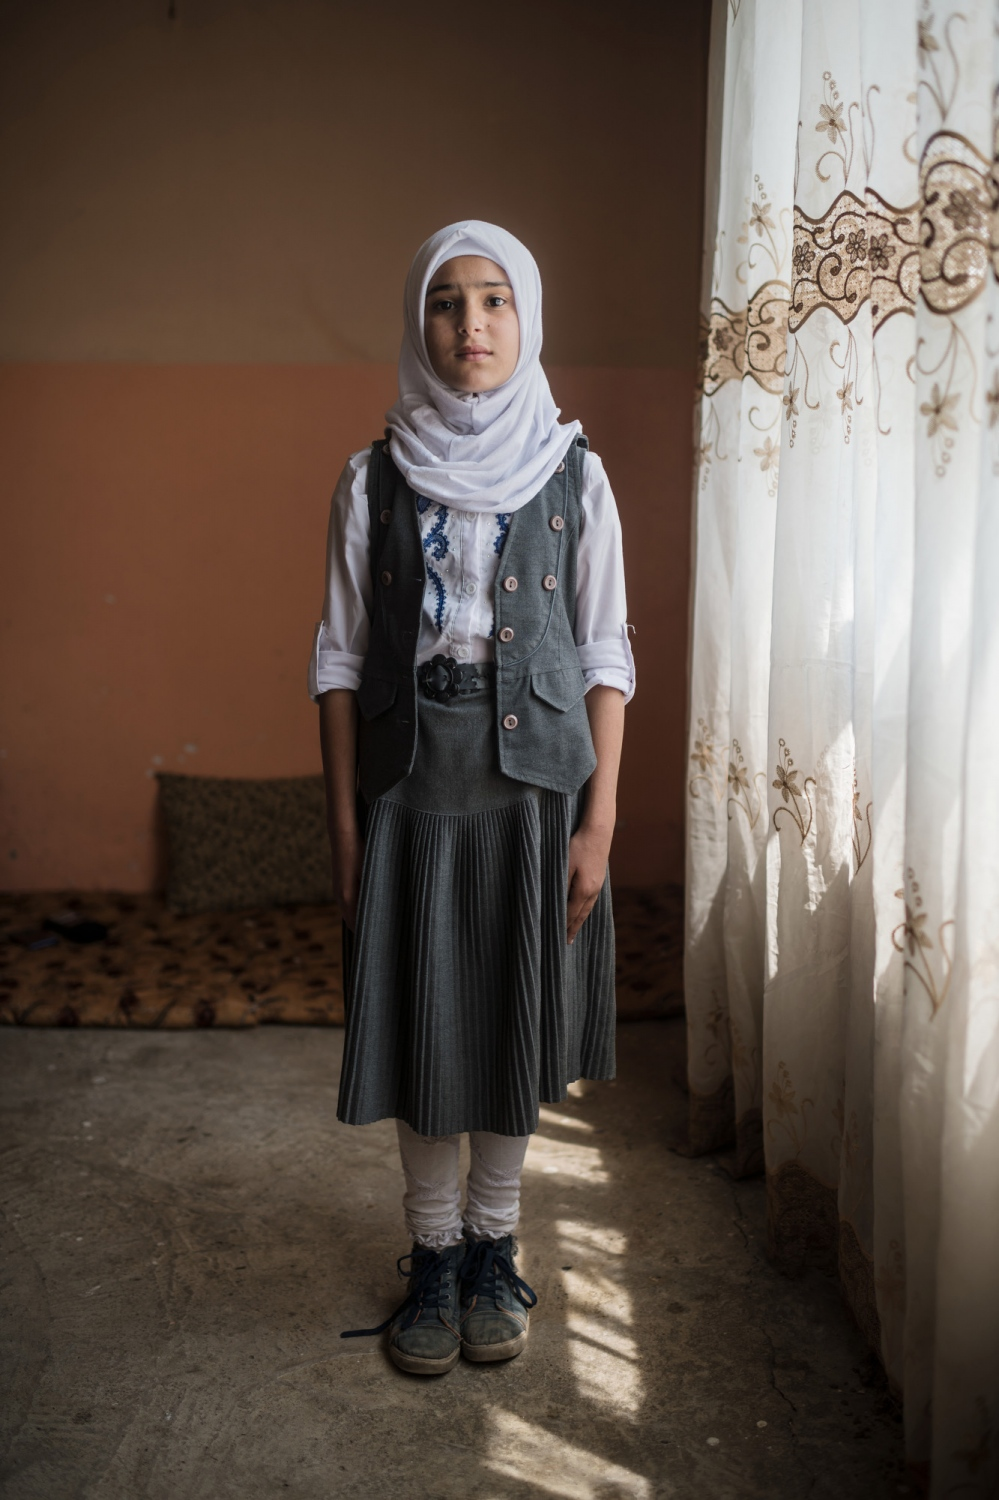 MOSUL 20180414 Ghuffran Ahmed, 12. Her family consists of nine girls and three boys. His mother is alive, but his father was taken by Daesh when they first took Mosul, they don't know if he is dead or alive. She lives with her uncle in the eastern parts of Mosul. We meet her in east Mosul. What is your favourite thing? My clothes, my laptop and my toys, but most of all the computer. I use it to play games and do homework. What do you like to do? I like to jump rope and to swim and to help mom and do my homework. What do you hate the most? I hate war and lies. What do you want to be when you grow up? I want to be a dentist. What are your dreams? I dream about finishing my studies. Which university do you want to attend? The Baghdad University. Why do you want to study there? Because it's a really good university. Photo: Vilhelm Stokstad / Kontinent